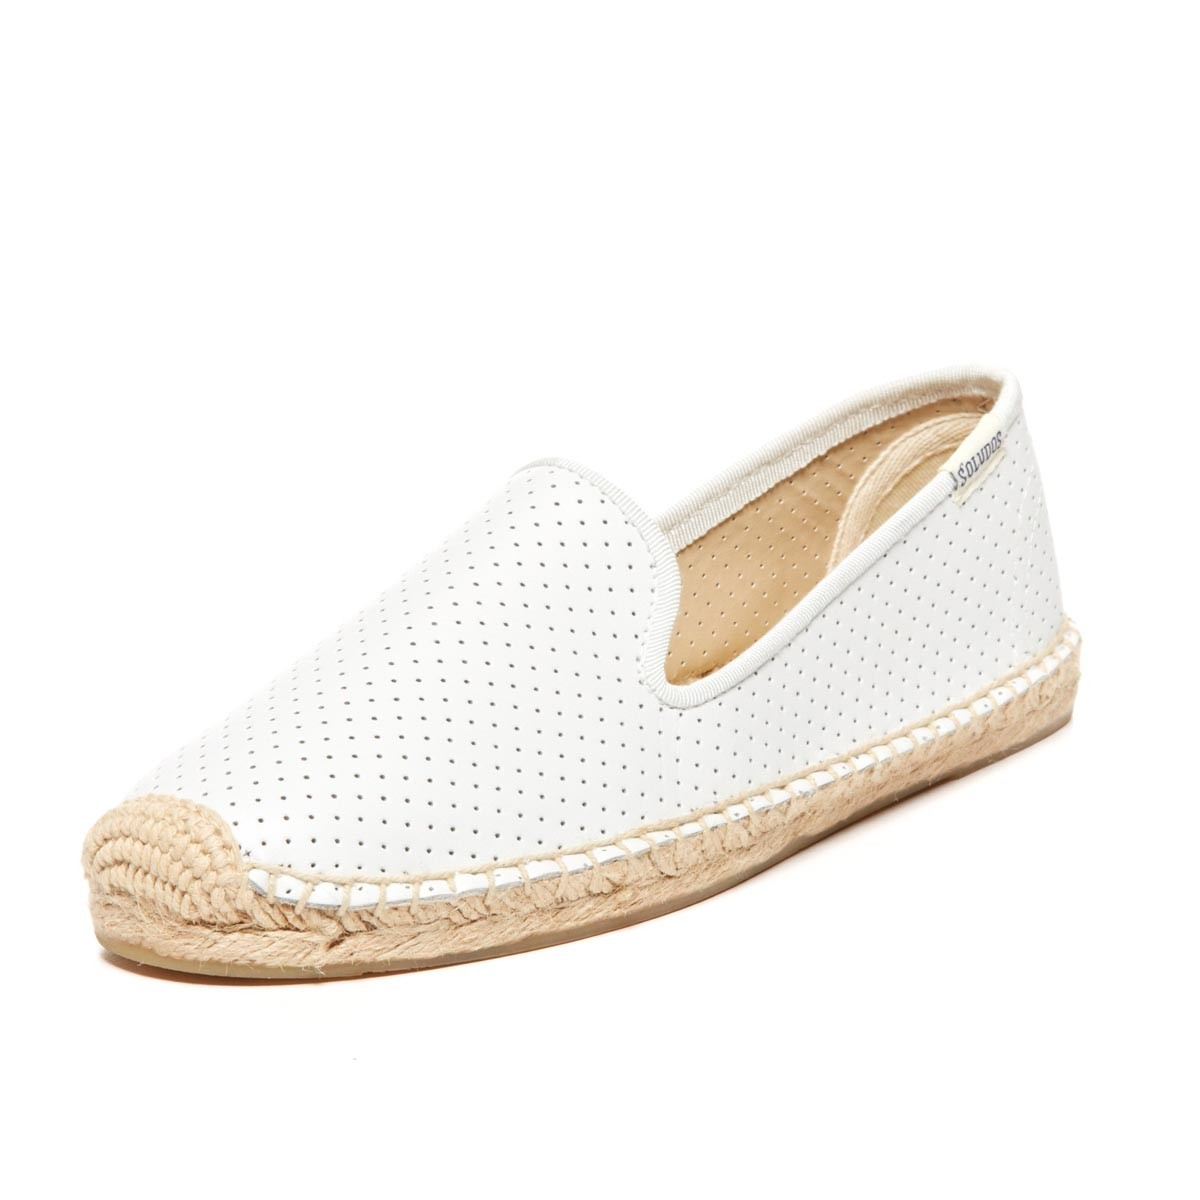 8a3fffdf4 Soludos Perforated Leather Smoking Slipper in White - Lyst